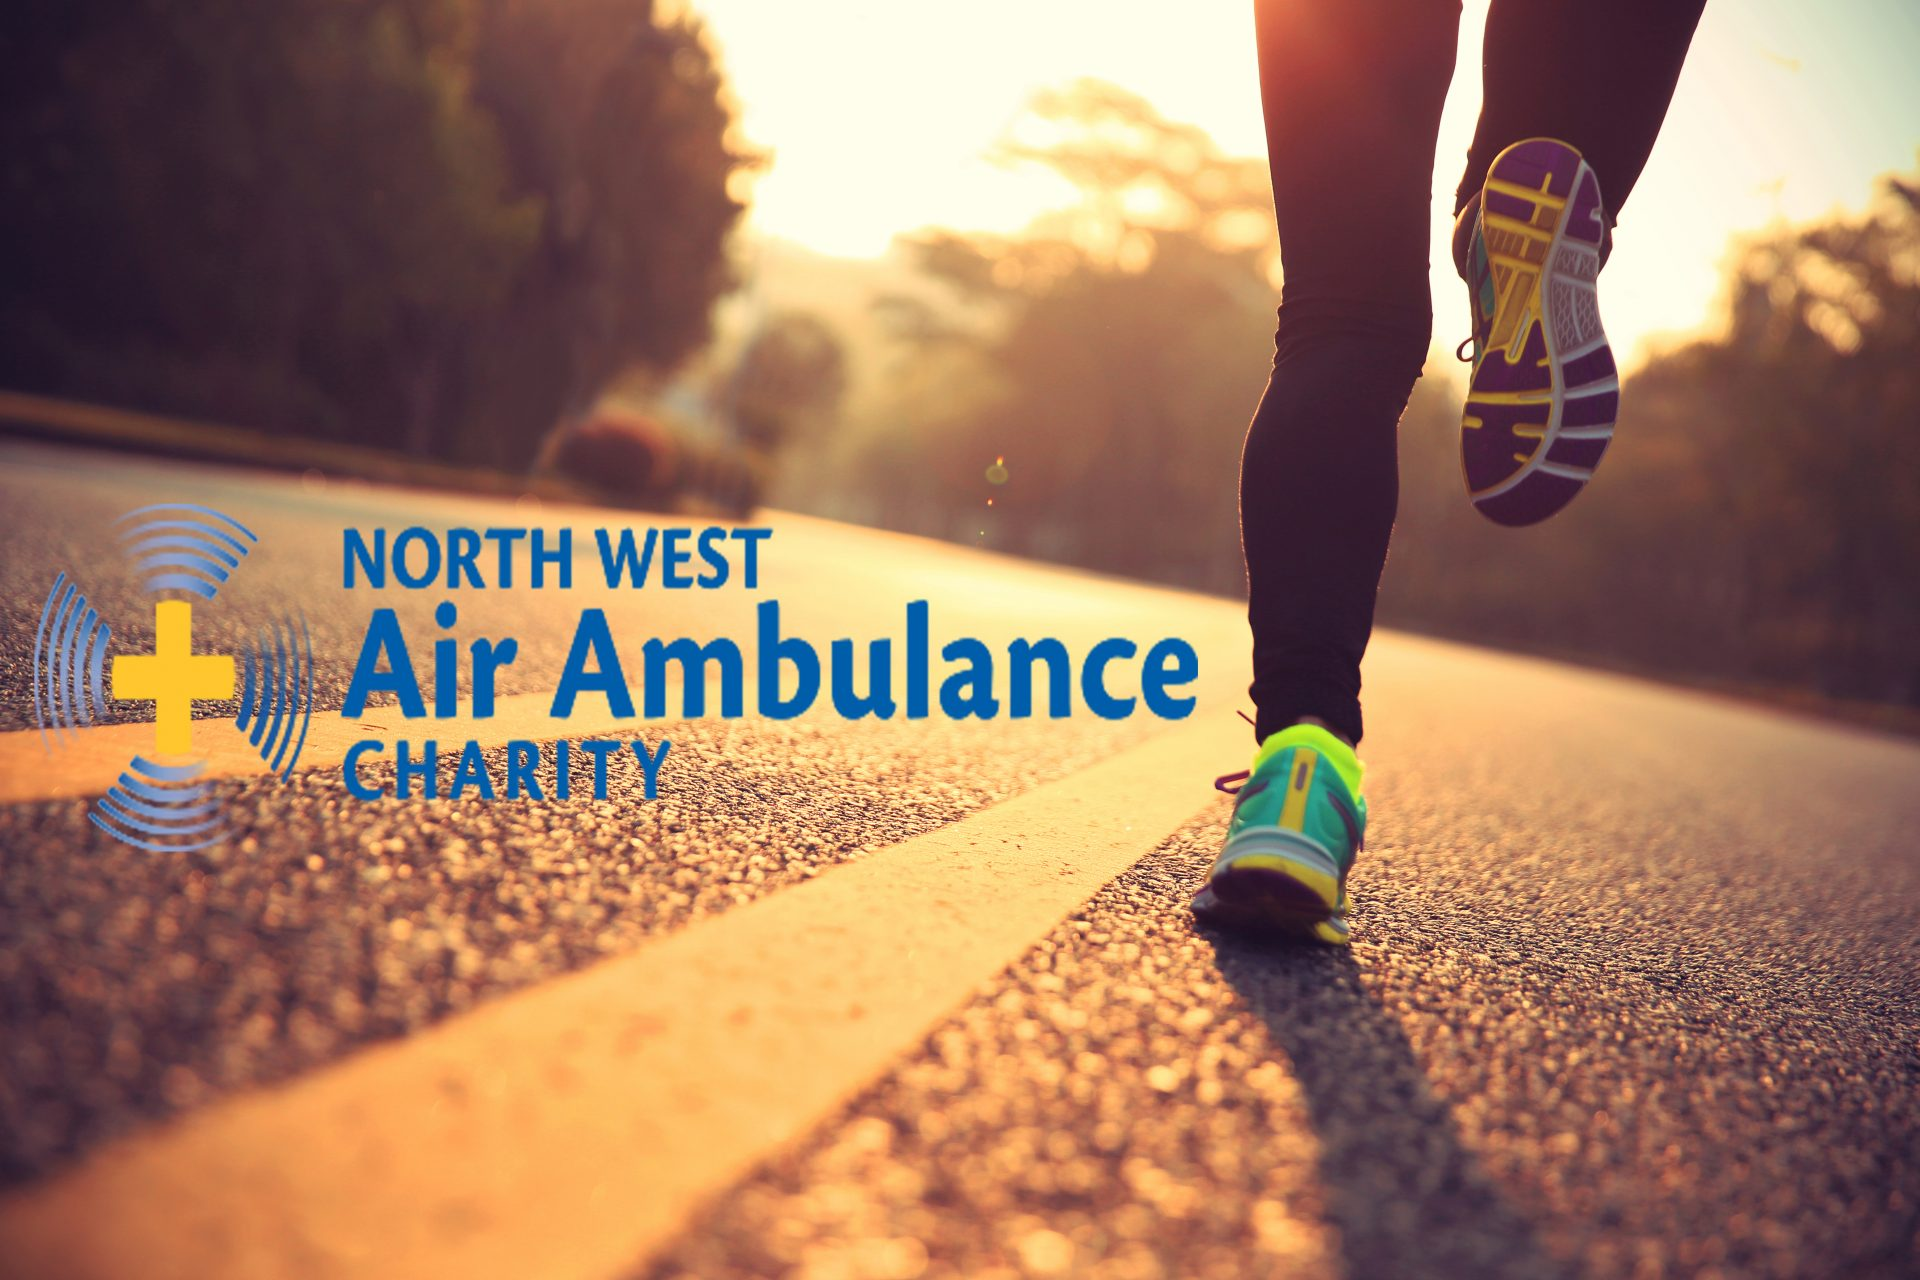 Help us to help support the North West Air Ambulance